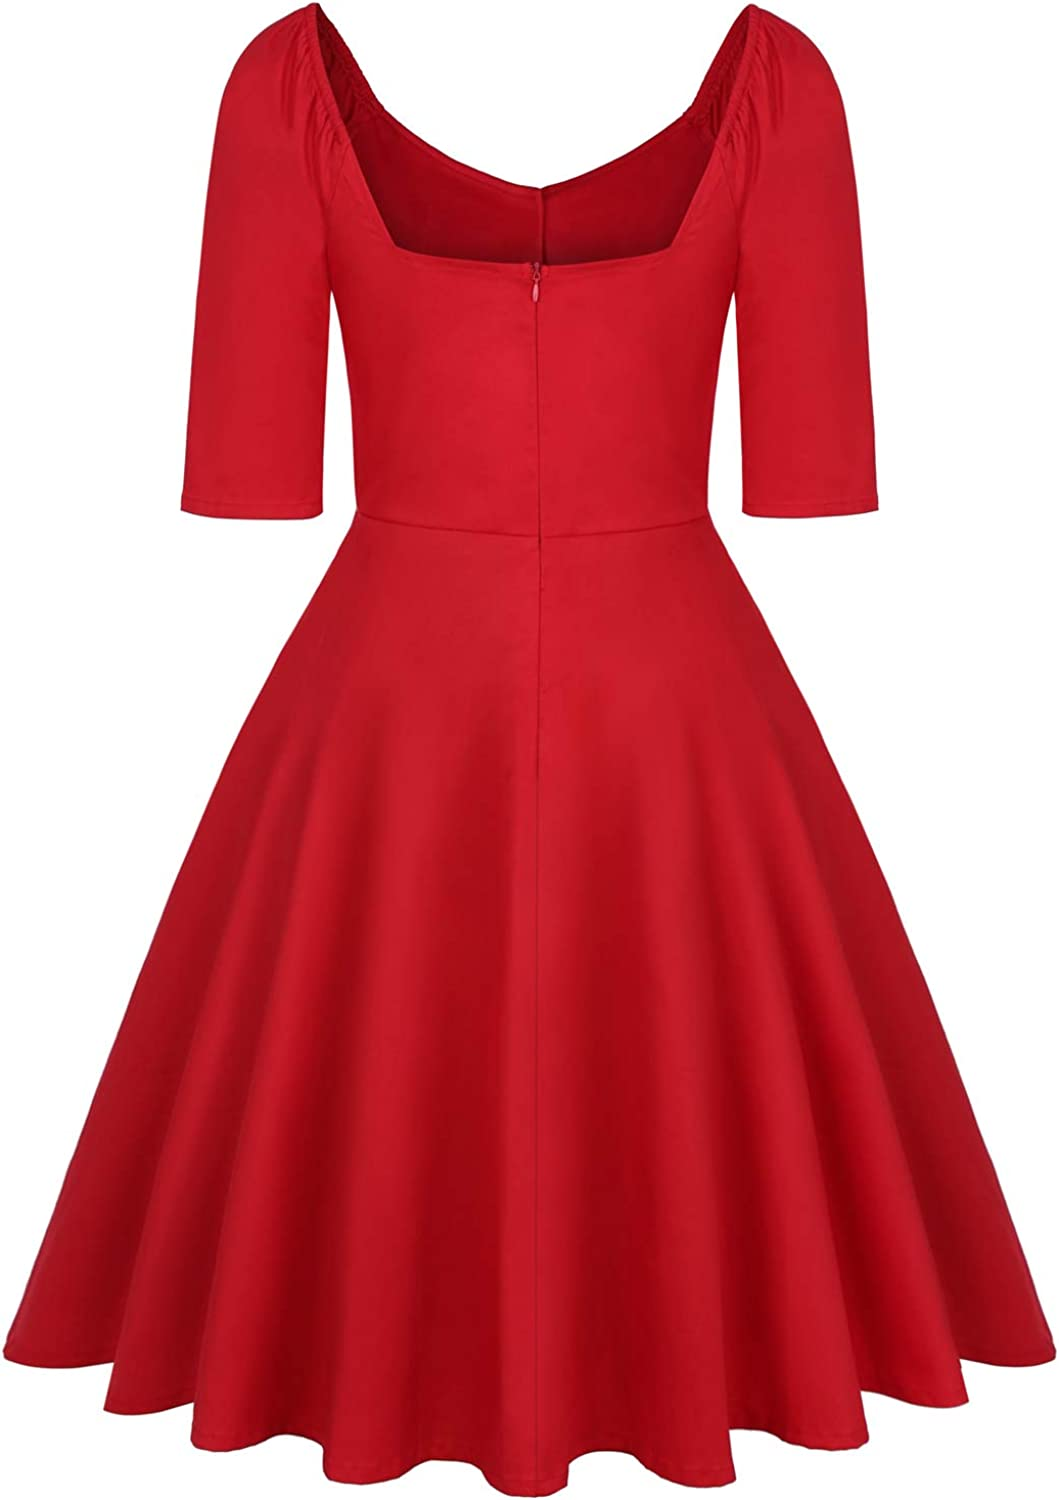 MINTLIMIT Women's 1950s Retro Rockabilly Dress V-Neck with Removable Button 3/4 Long Sleeve Knee Length Party Cocktail Dress Red